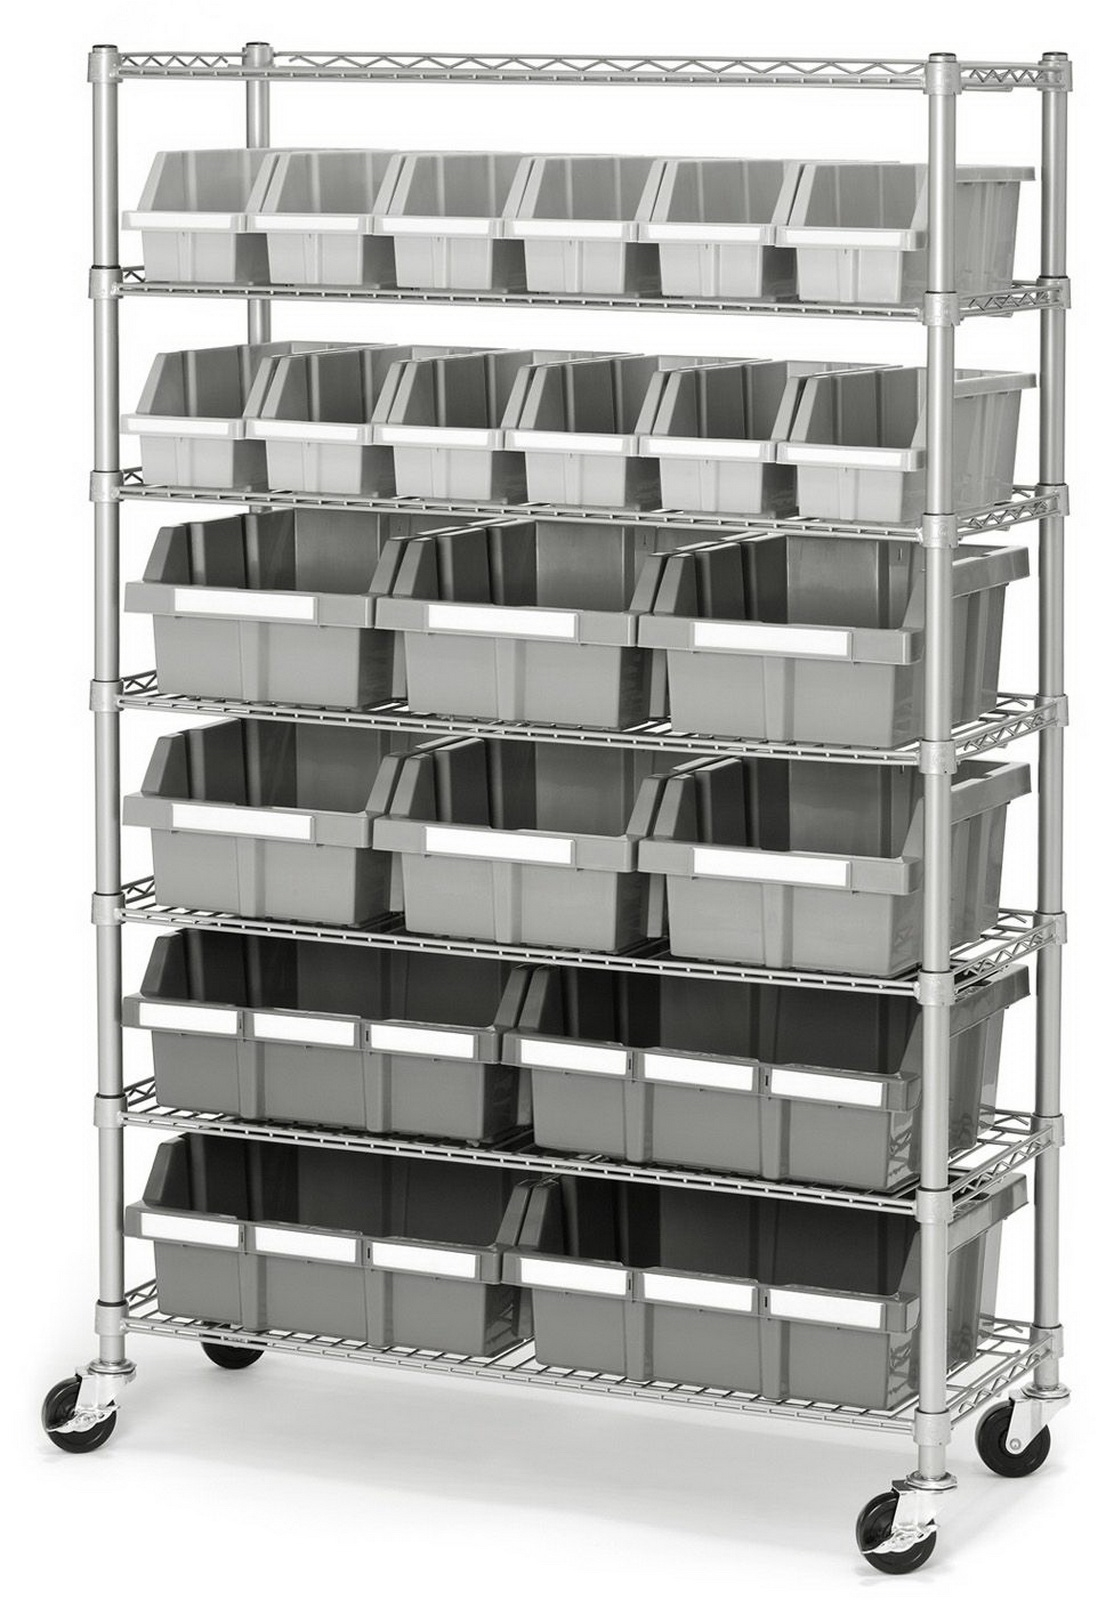 Steel Shelving 22 Bin Metal Parts Storage Rack 7 Tier Metal Shelves U0026 Wheels